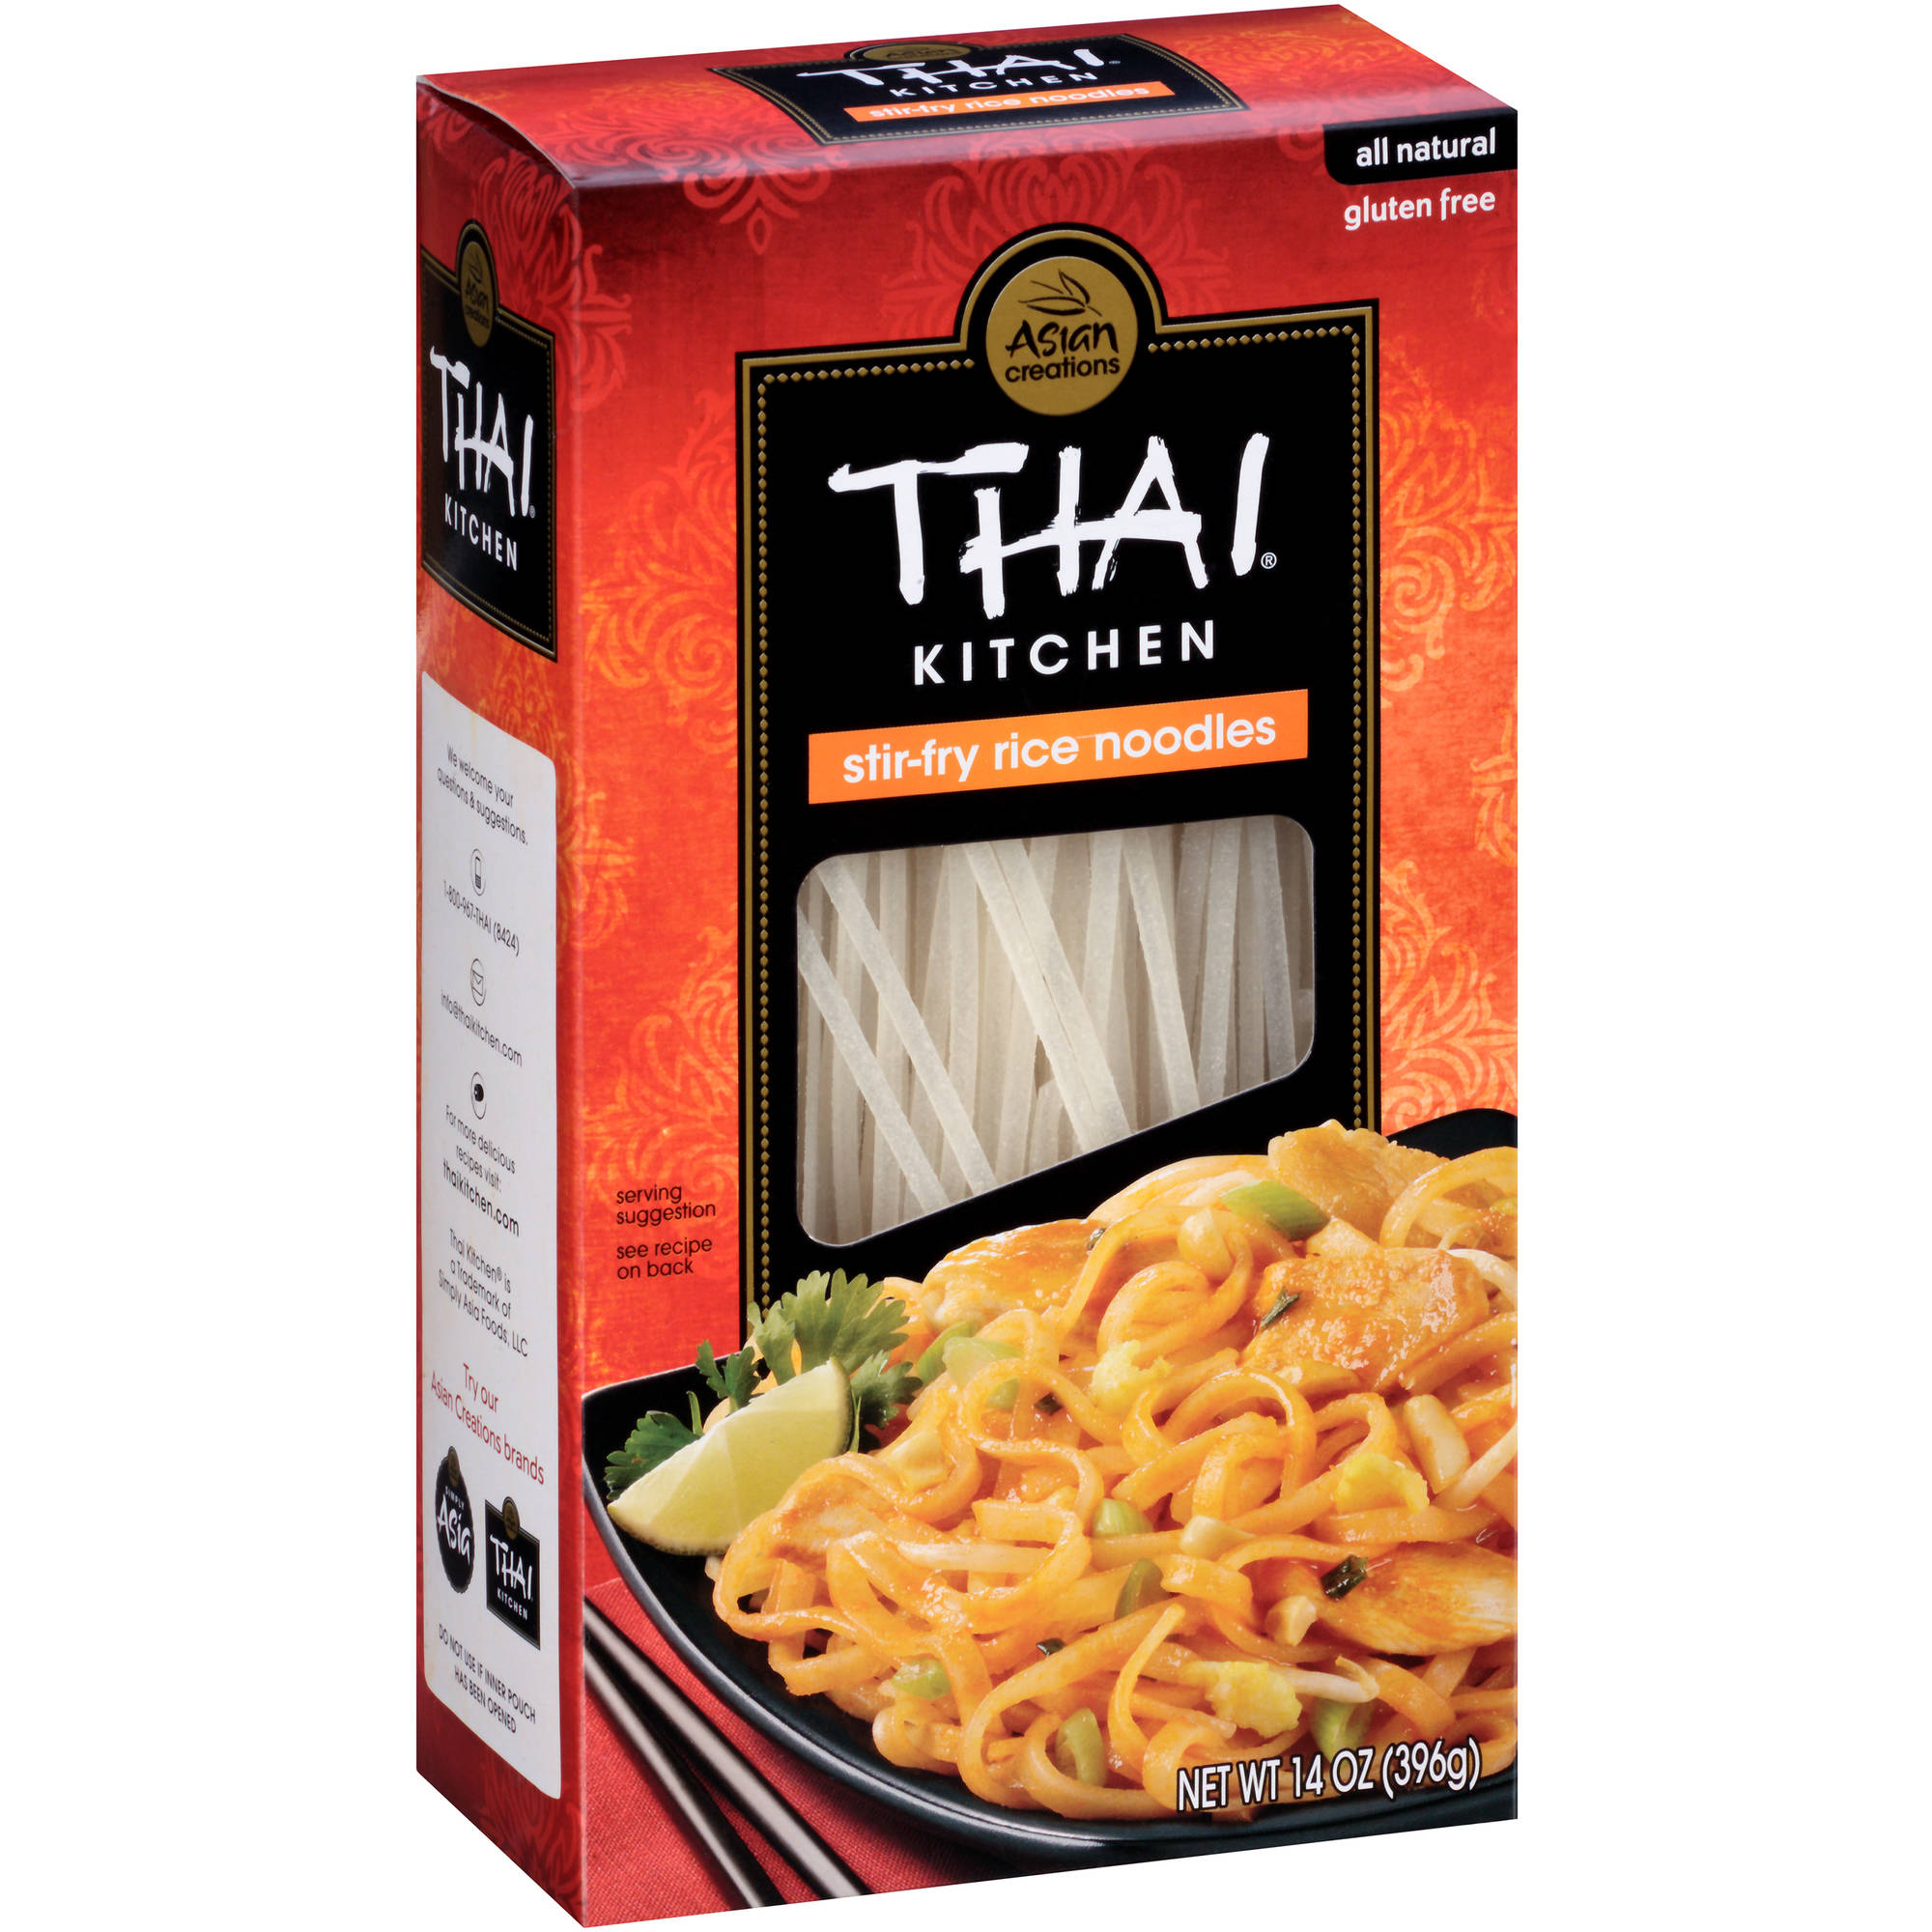 Thai Kitchen thai kitchen gluten free stir fry rice noodles, 14 oz - walmart